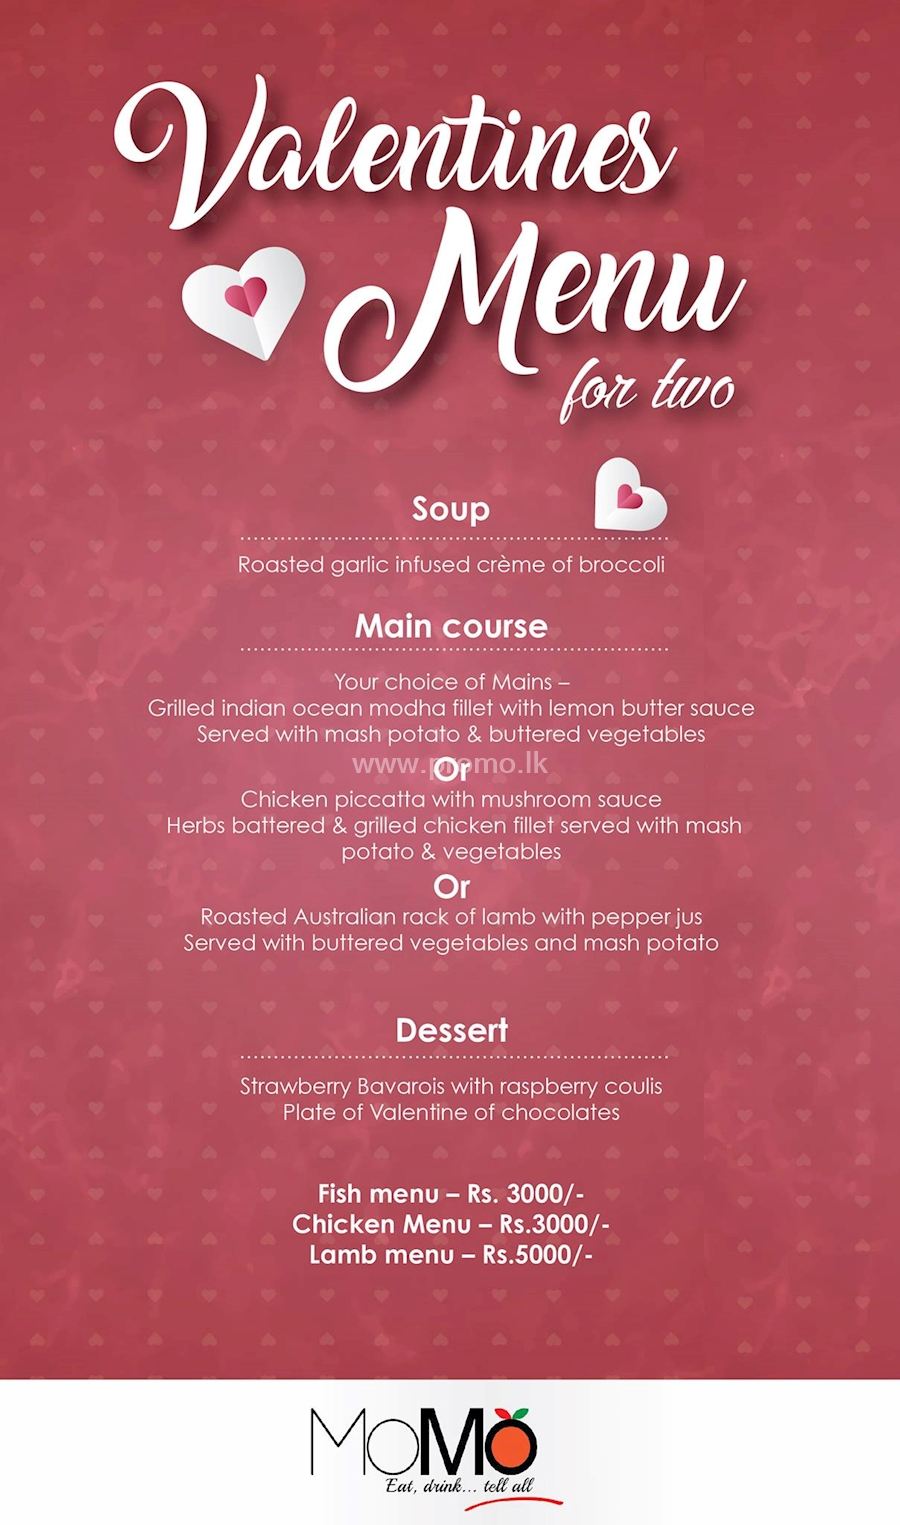 Valentines Menu for two at MoMo Restaurant